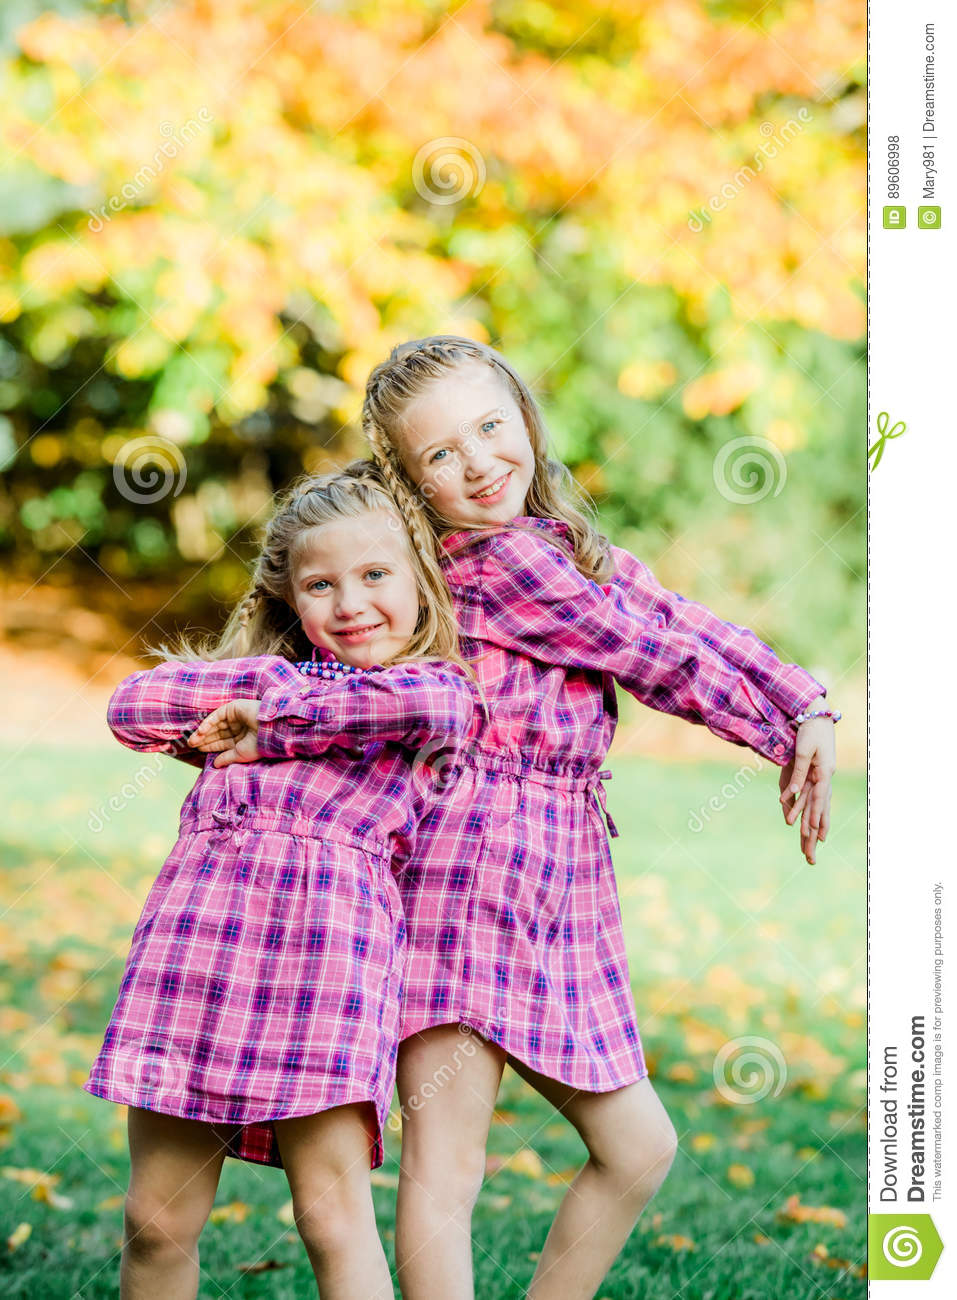 Two Young Caucasian Sisters Strike a Pose in Matching Pink Flannel Dresses